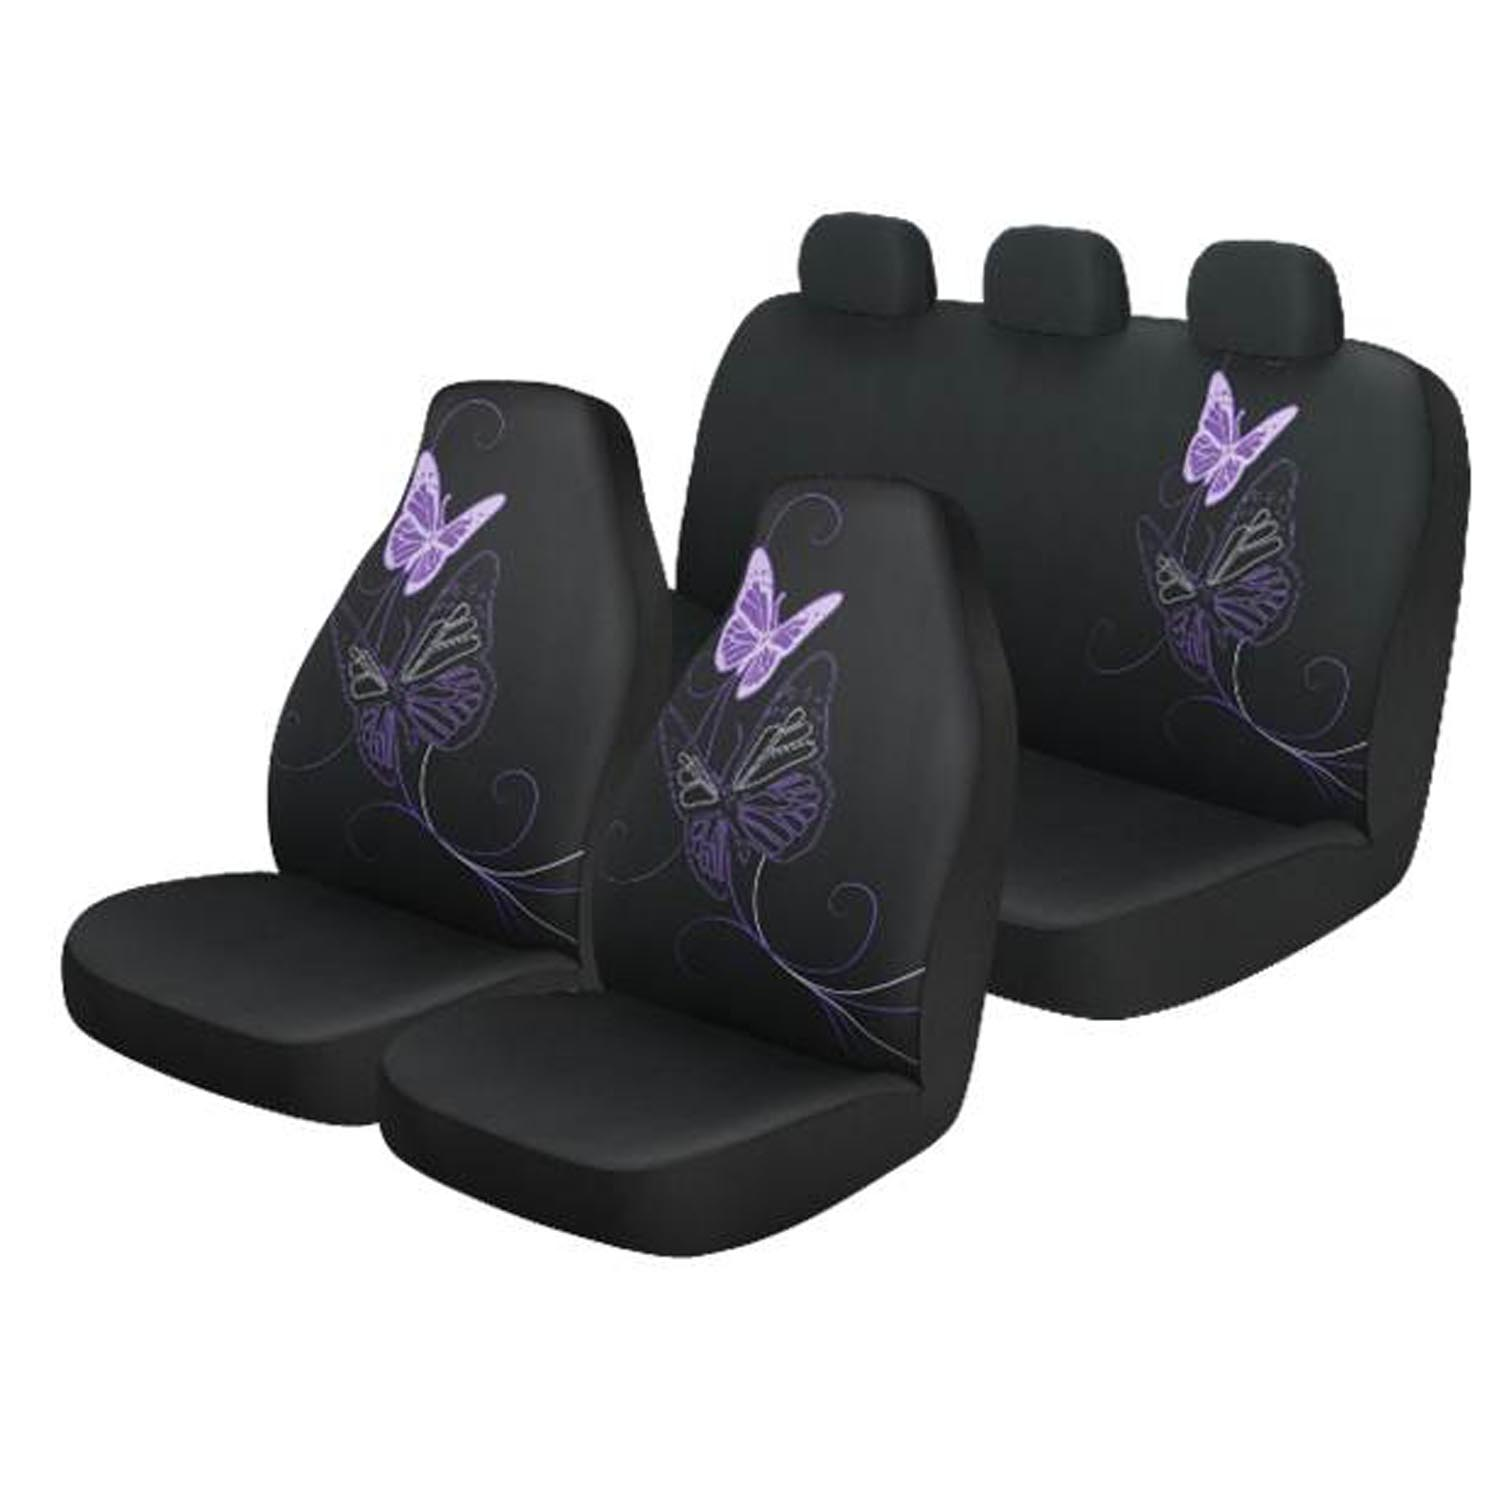 Auto Drive Black And Purple Butterfly 3 Piece Seat Cover